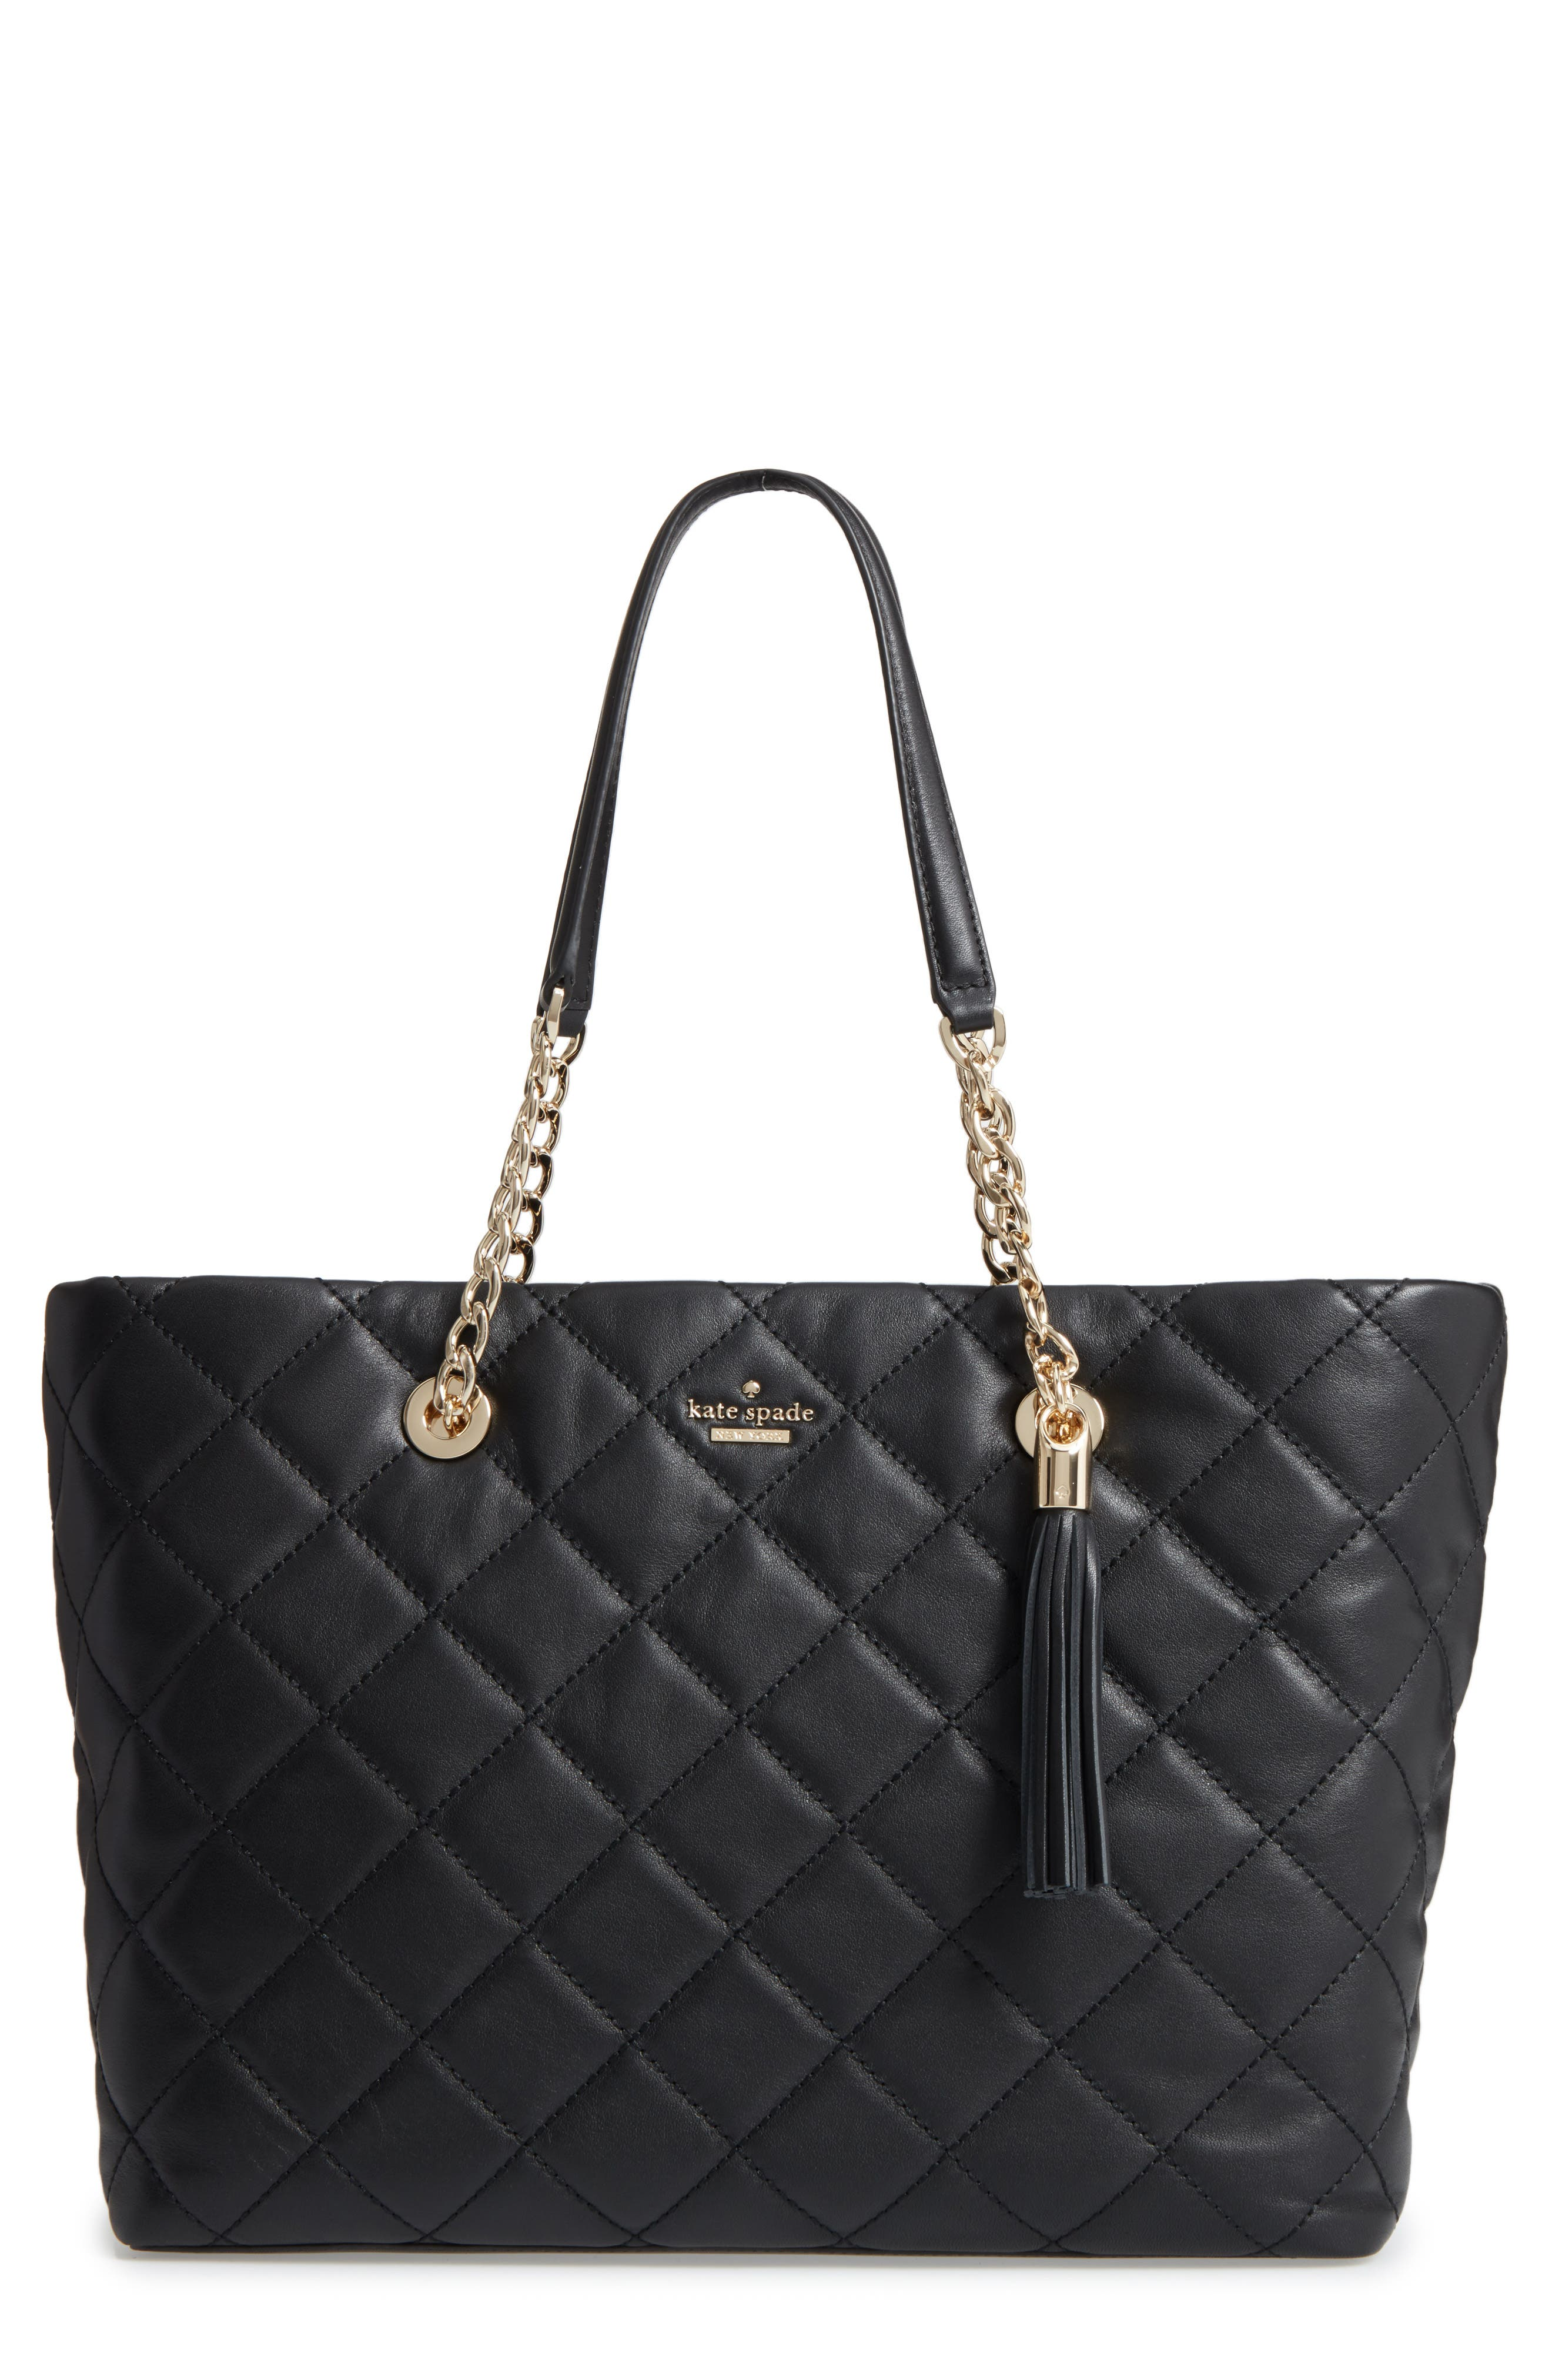 emerson place - priya quilted leather tote,                             Main thumbnail 1, color,                             Black